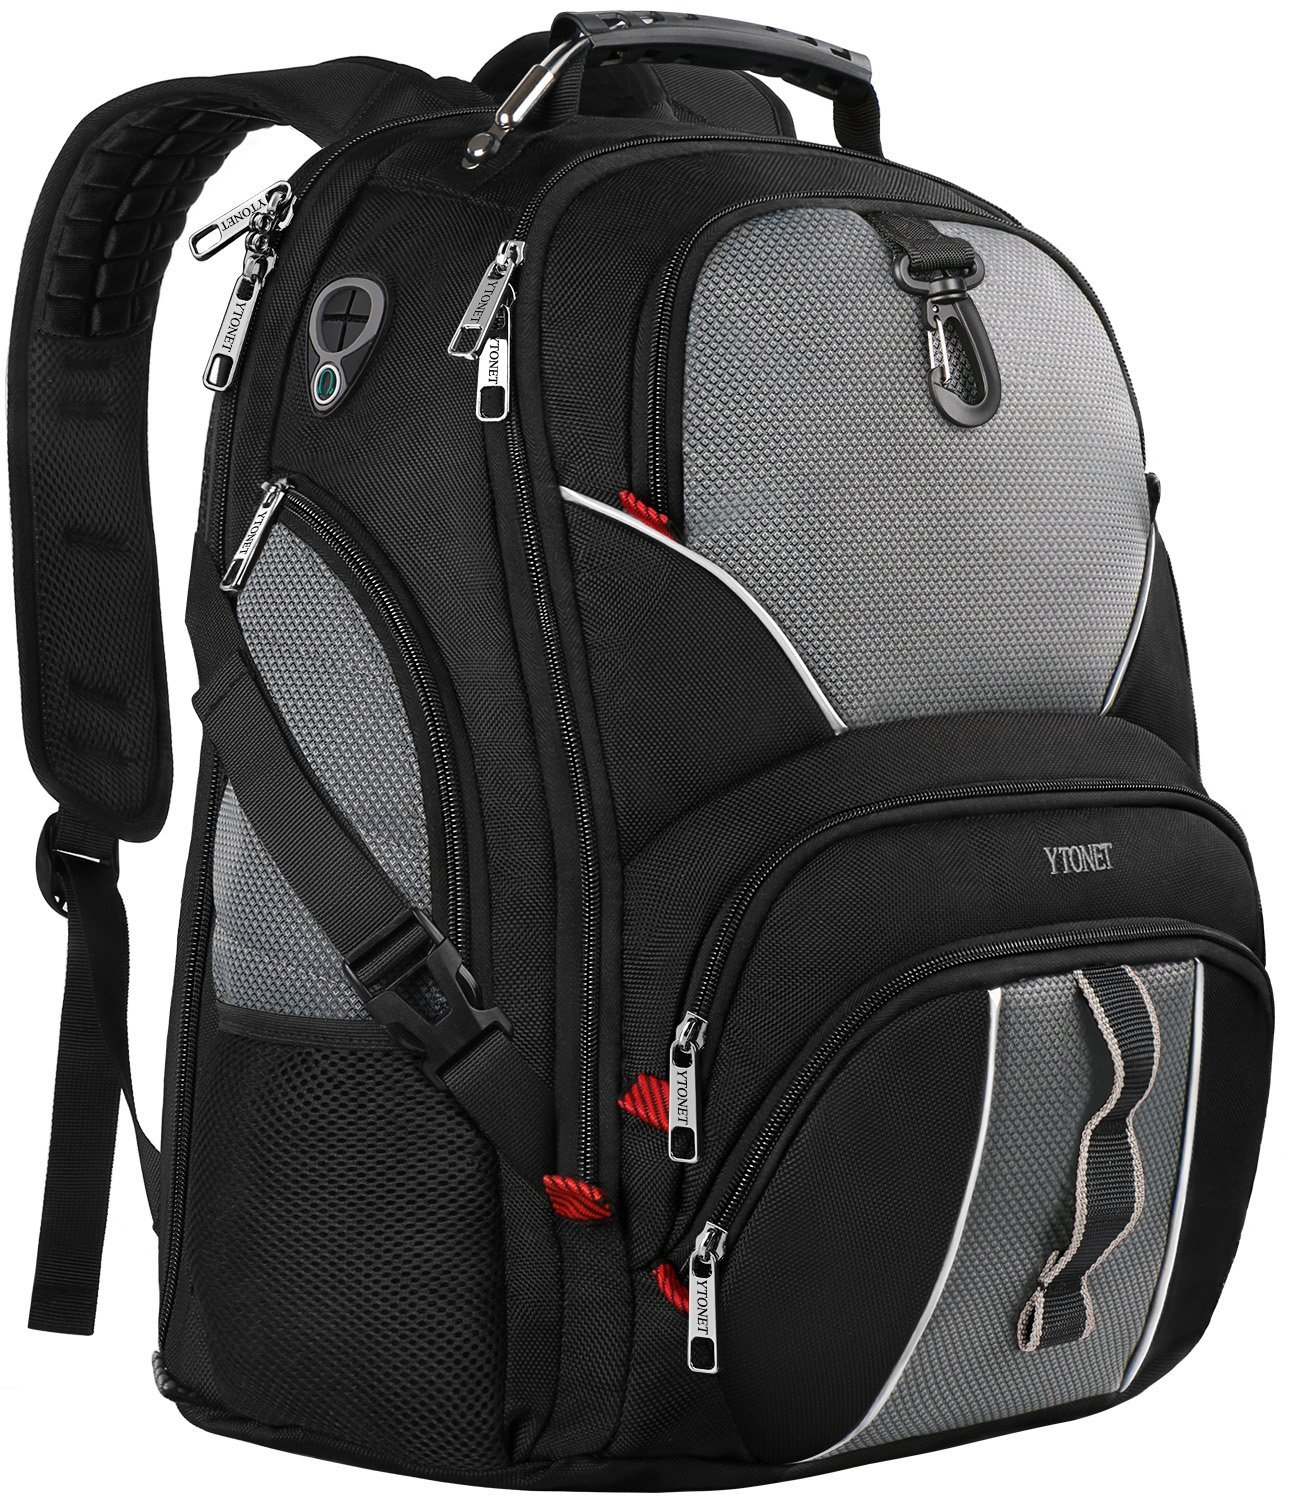 Travel Laptop Backpack, Large Computer Backpack Bag Fits 17 inch Laptop for Men Women for Hiking/School / College, Black TSA Smart Scan Bookbag with 9 Compartments Made of Water-Resistant Fabric by Ytonet (Image #1)